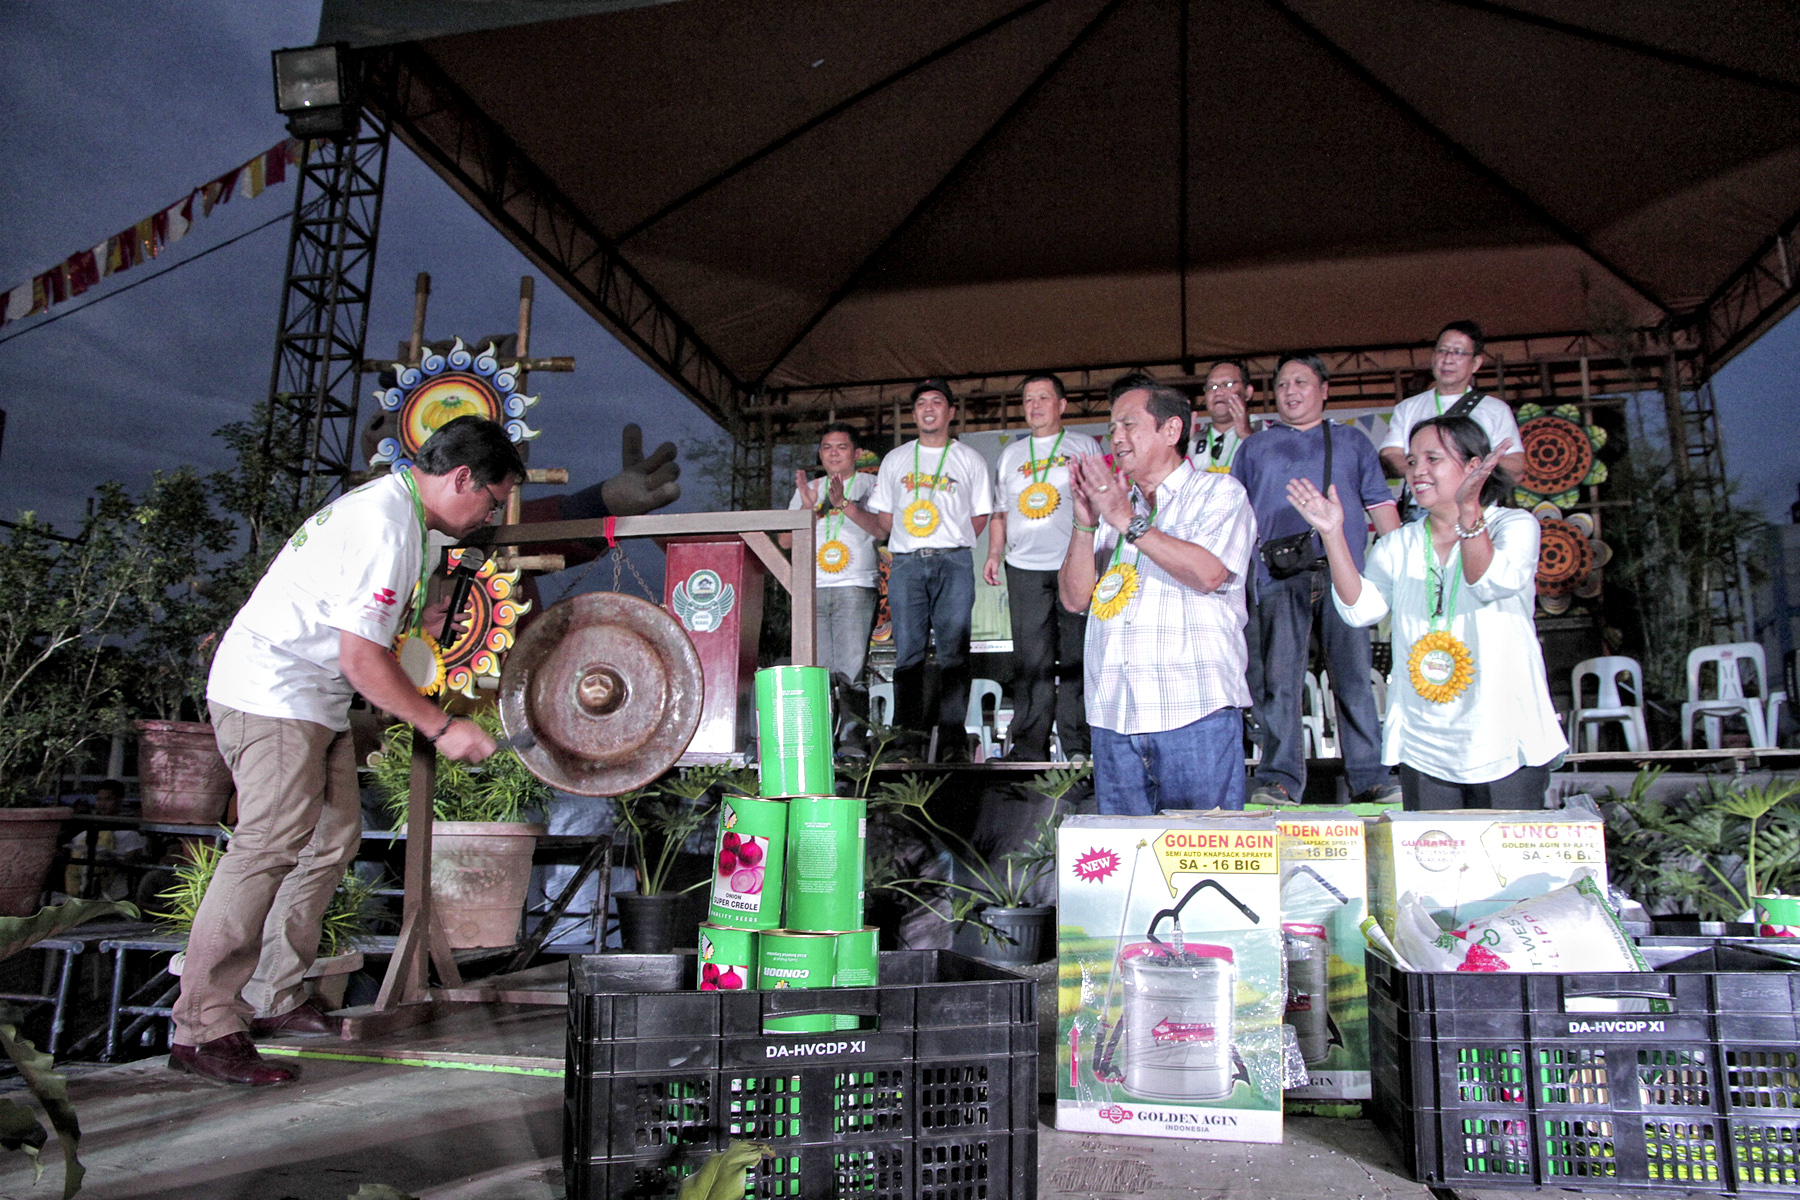 Mayor Allan L. Rellon formally opens the 3rd UGMAD Festival 2015 by hitting the gong, signaling the start of the three weeklong festival (August 31 to September 20) showcasing different agricultural products in the city done last September 4, 2015.